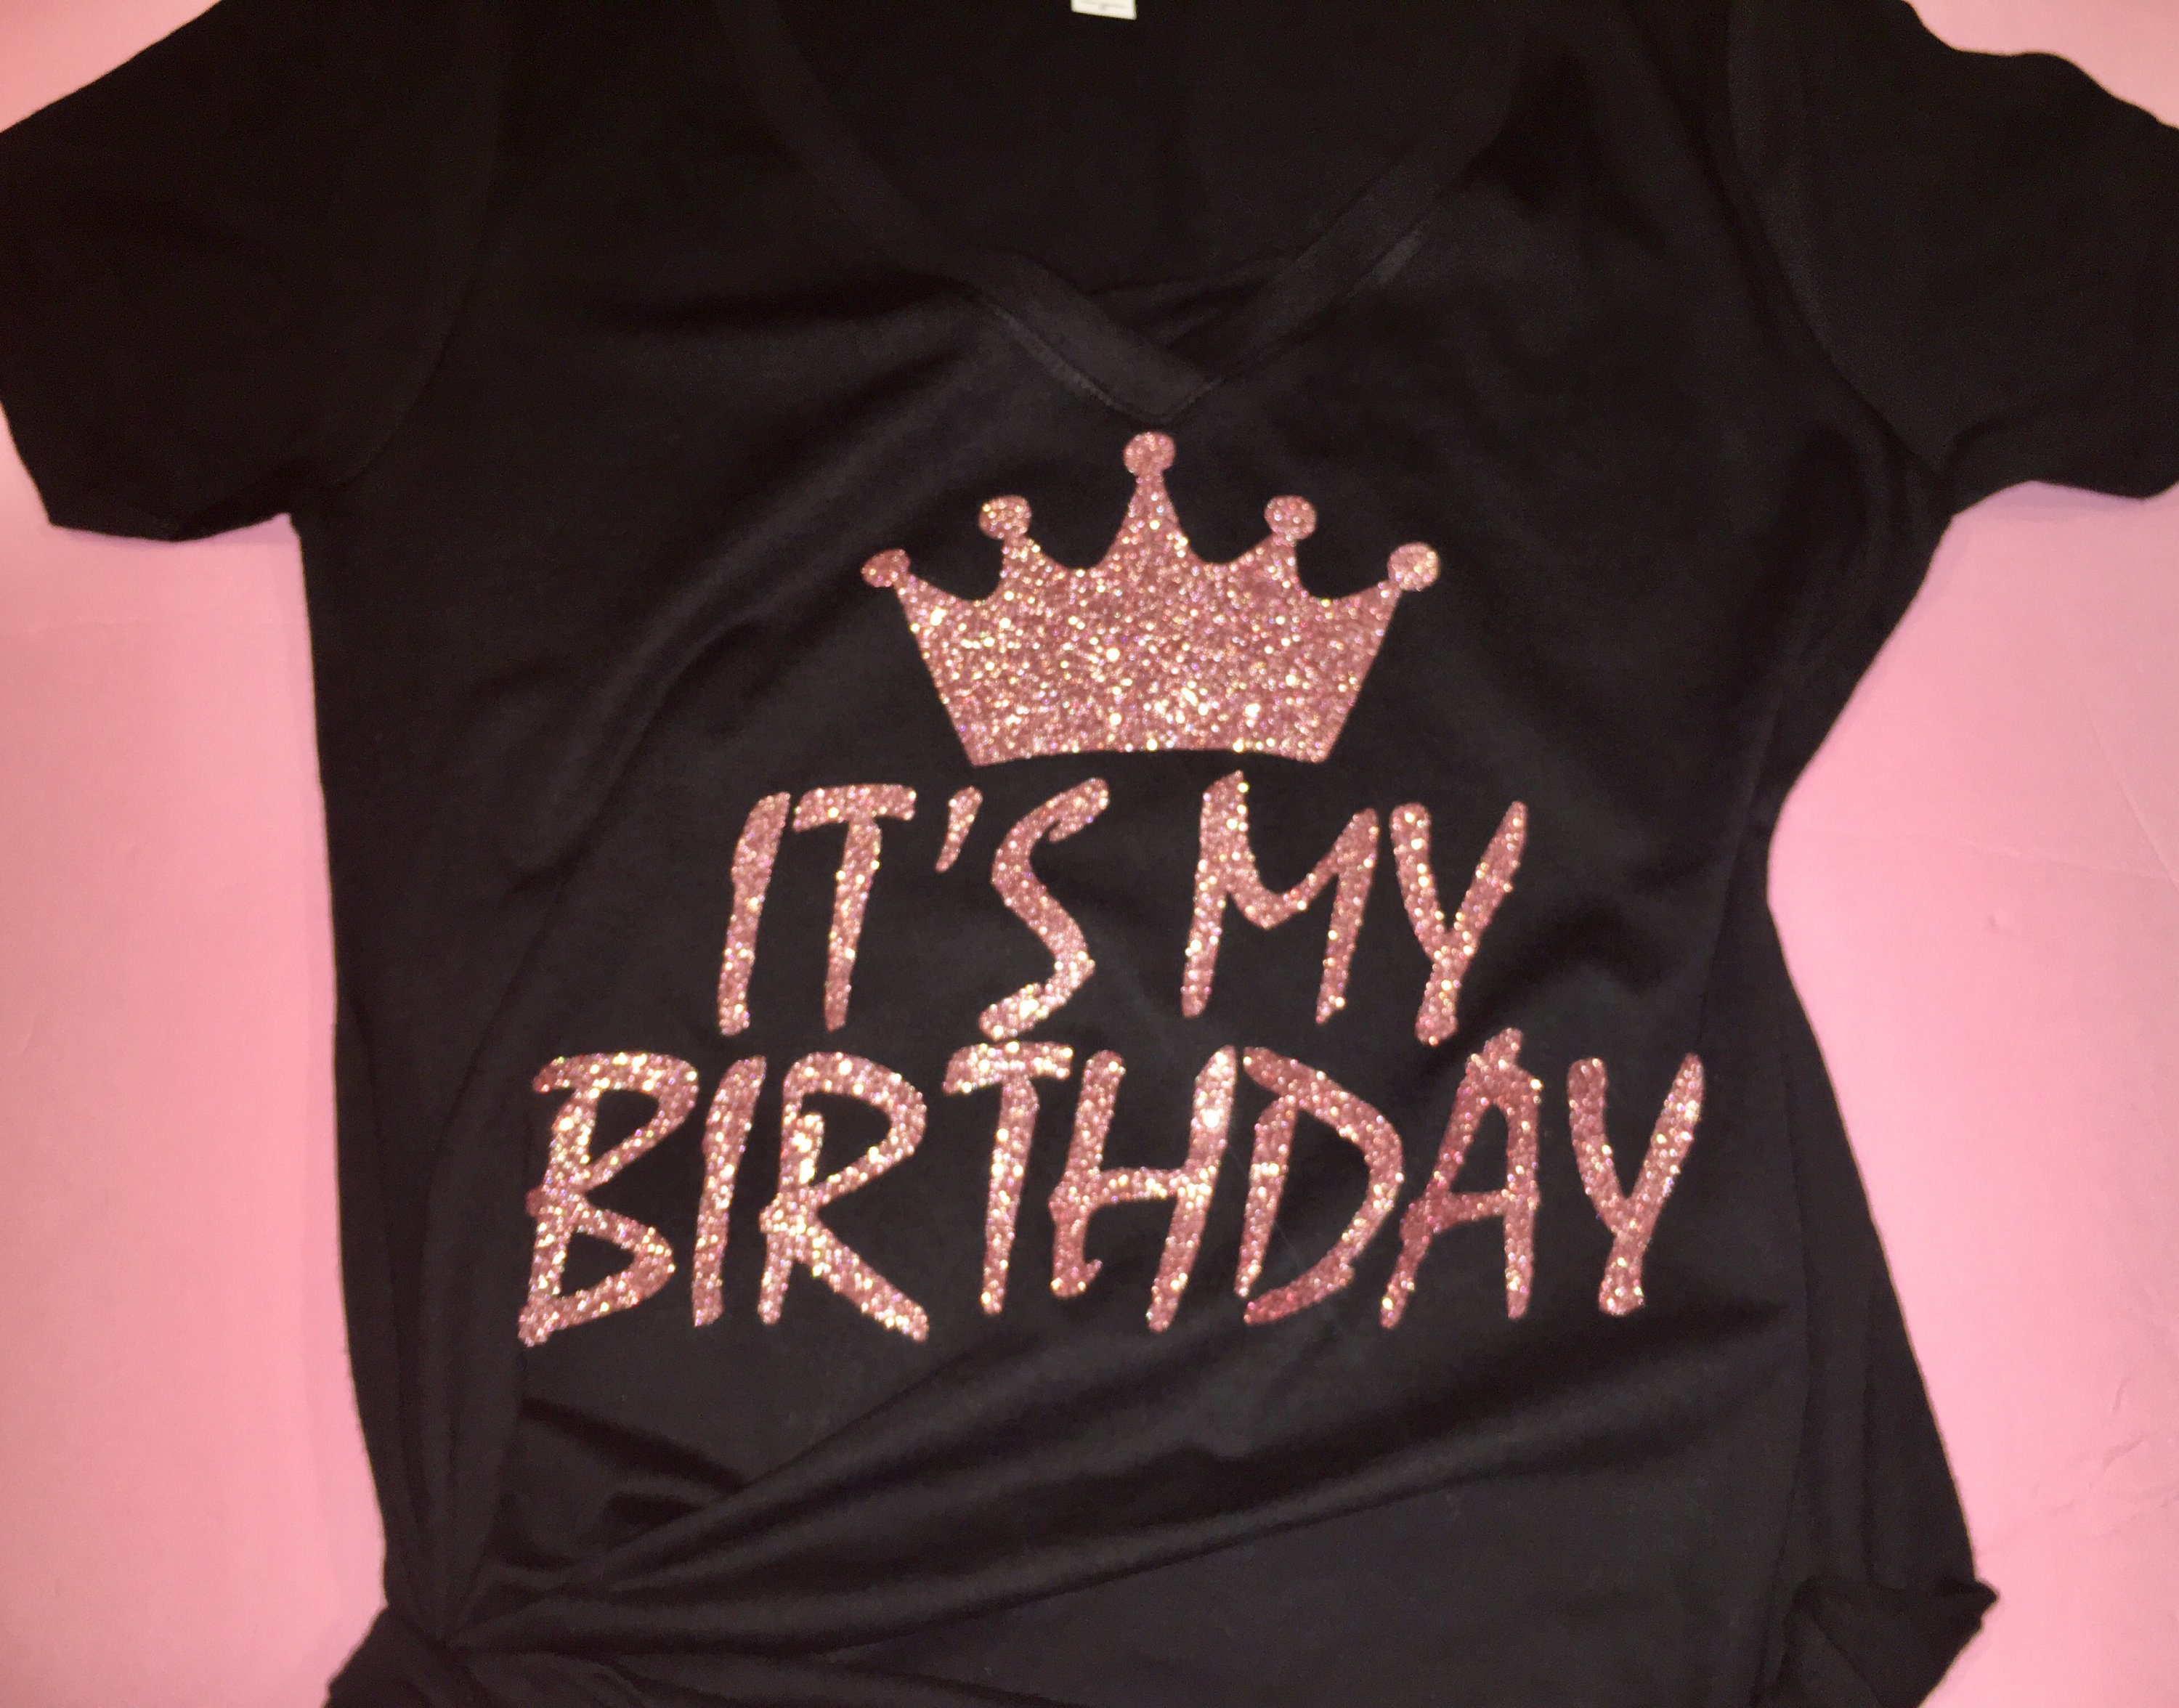 Birthday Tshirt Its My Rosegold Shirt Tees For Women Top Rose Gold Glitter Tshirts